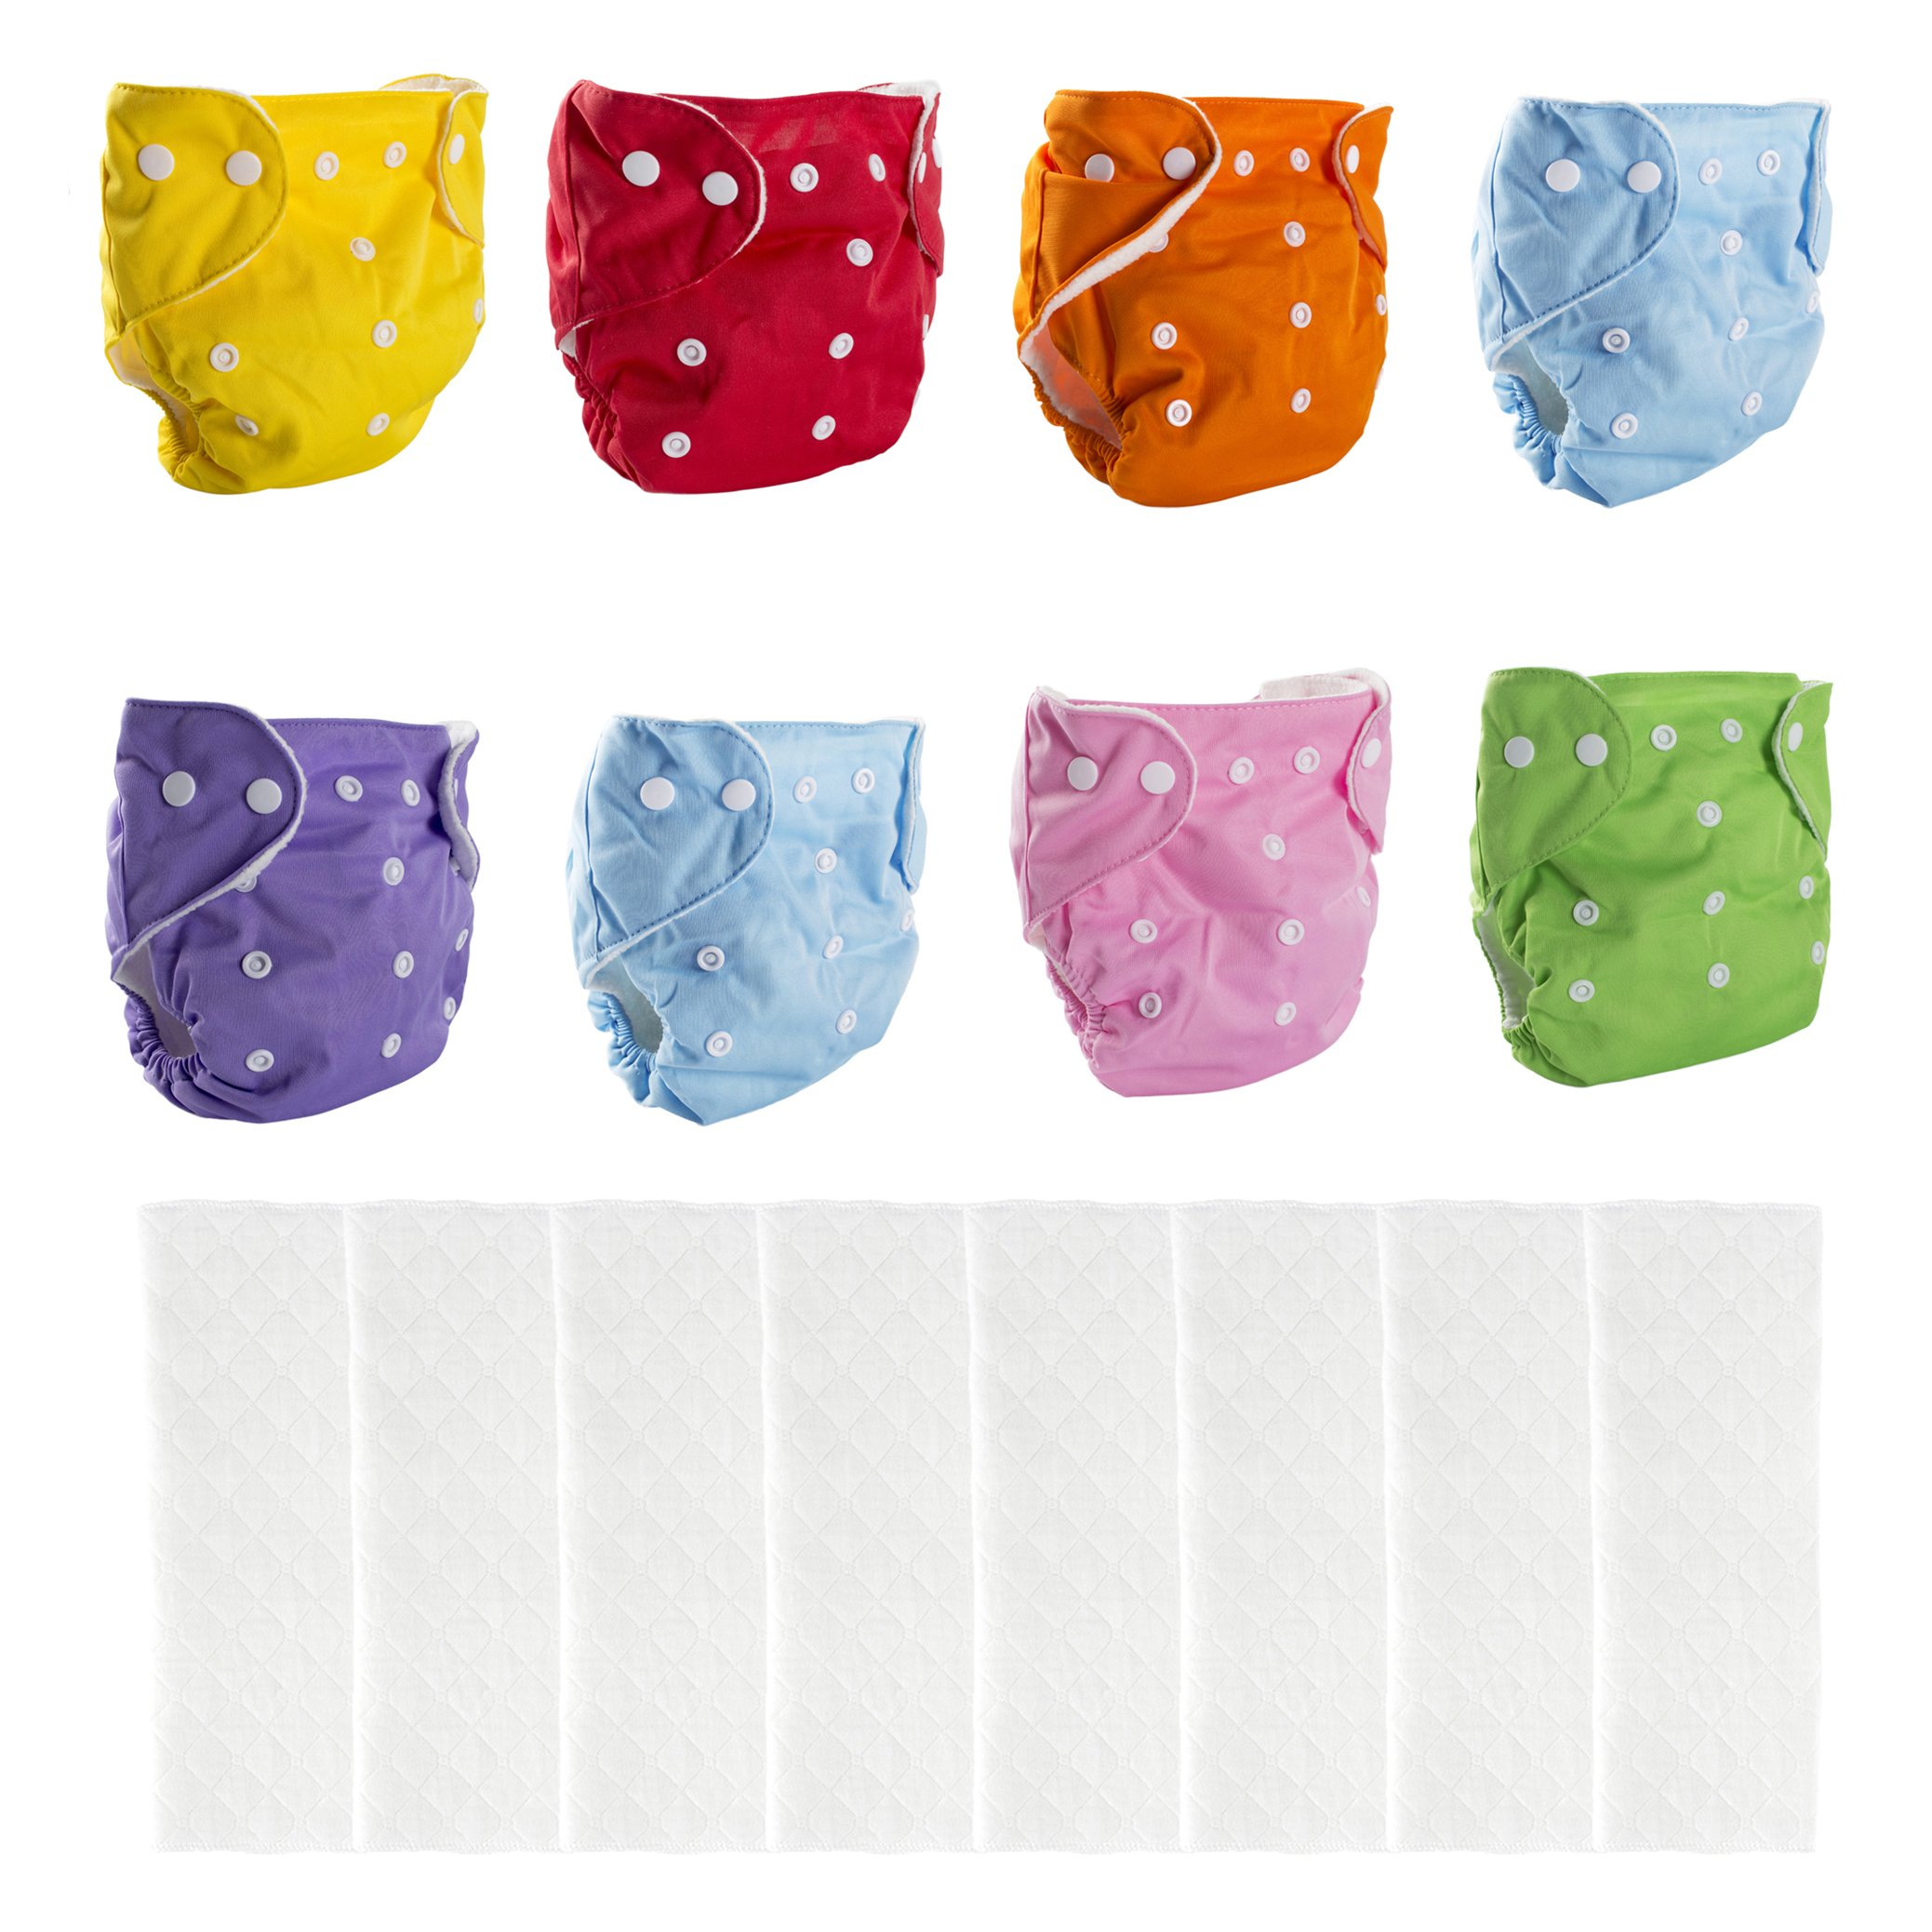 Big Elephant 8 Pack Baby Solid Color Reusable Cloth Pocket Diapers with 8 Microfiber Inserts PD-04